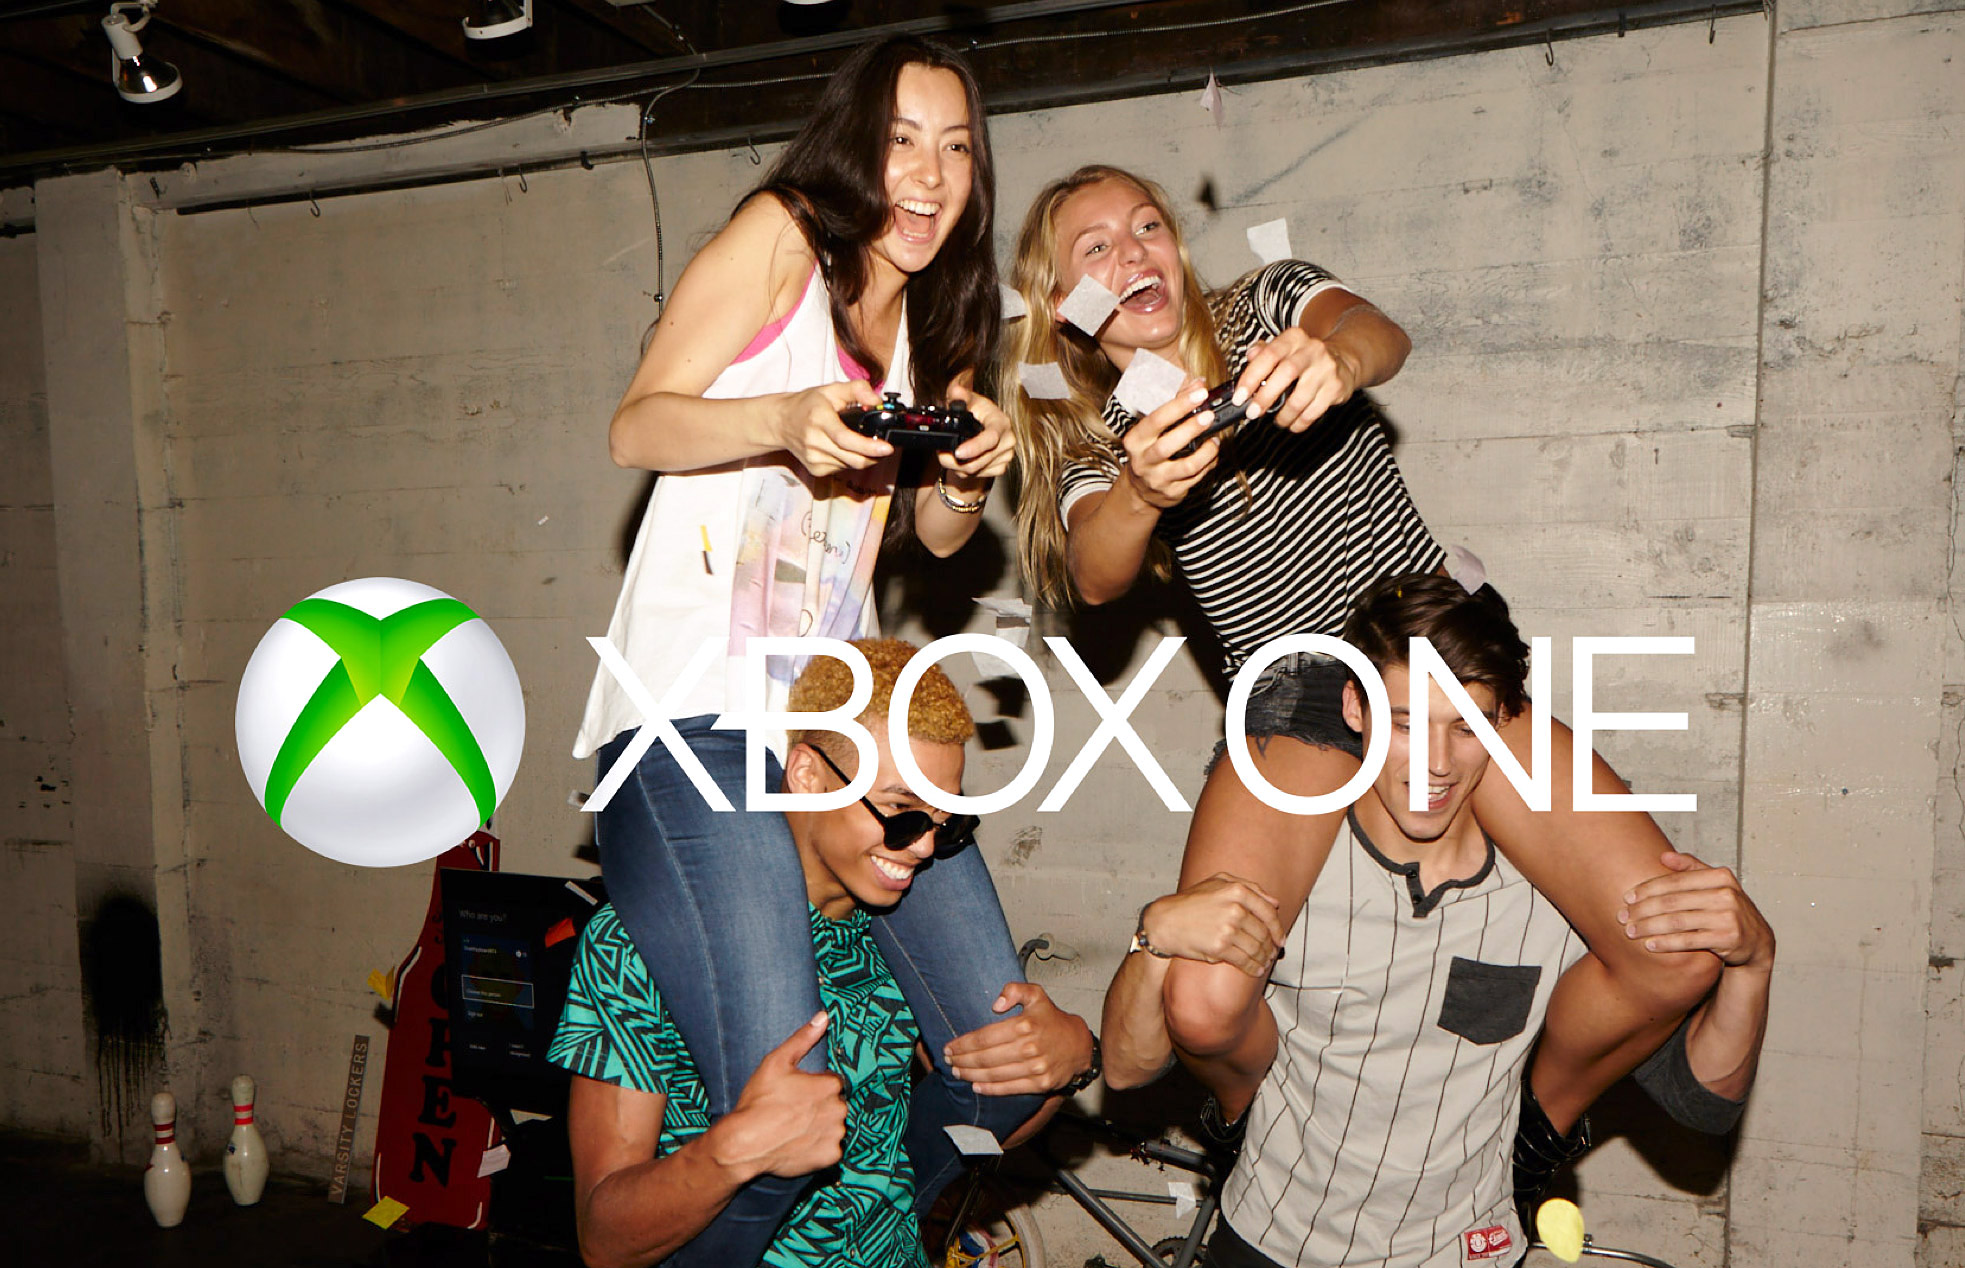 Xbox_Edgy_Advertising_Photography_Commercial_Lifestyle_Photographer_Los_Angeles